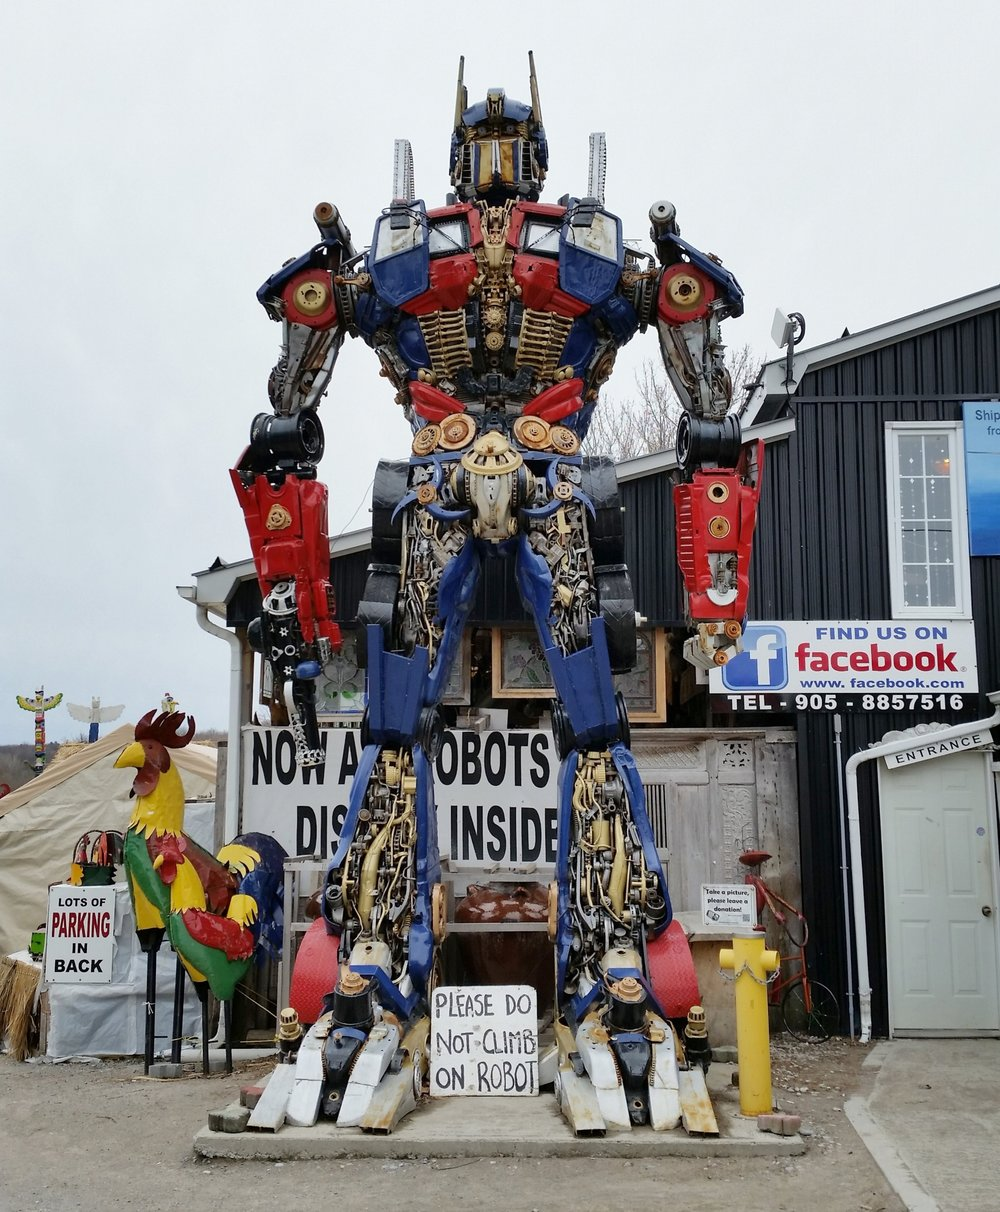 The 26 foot tall robot in the parking lot.